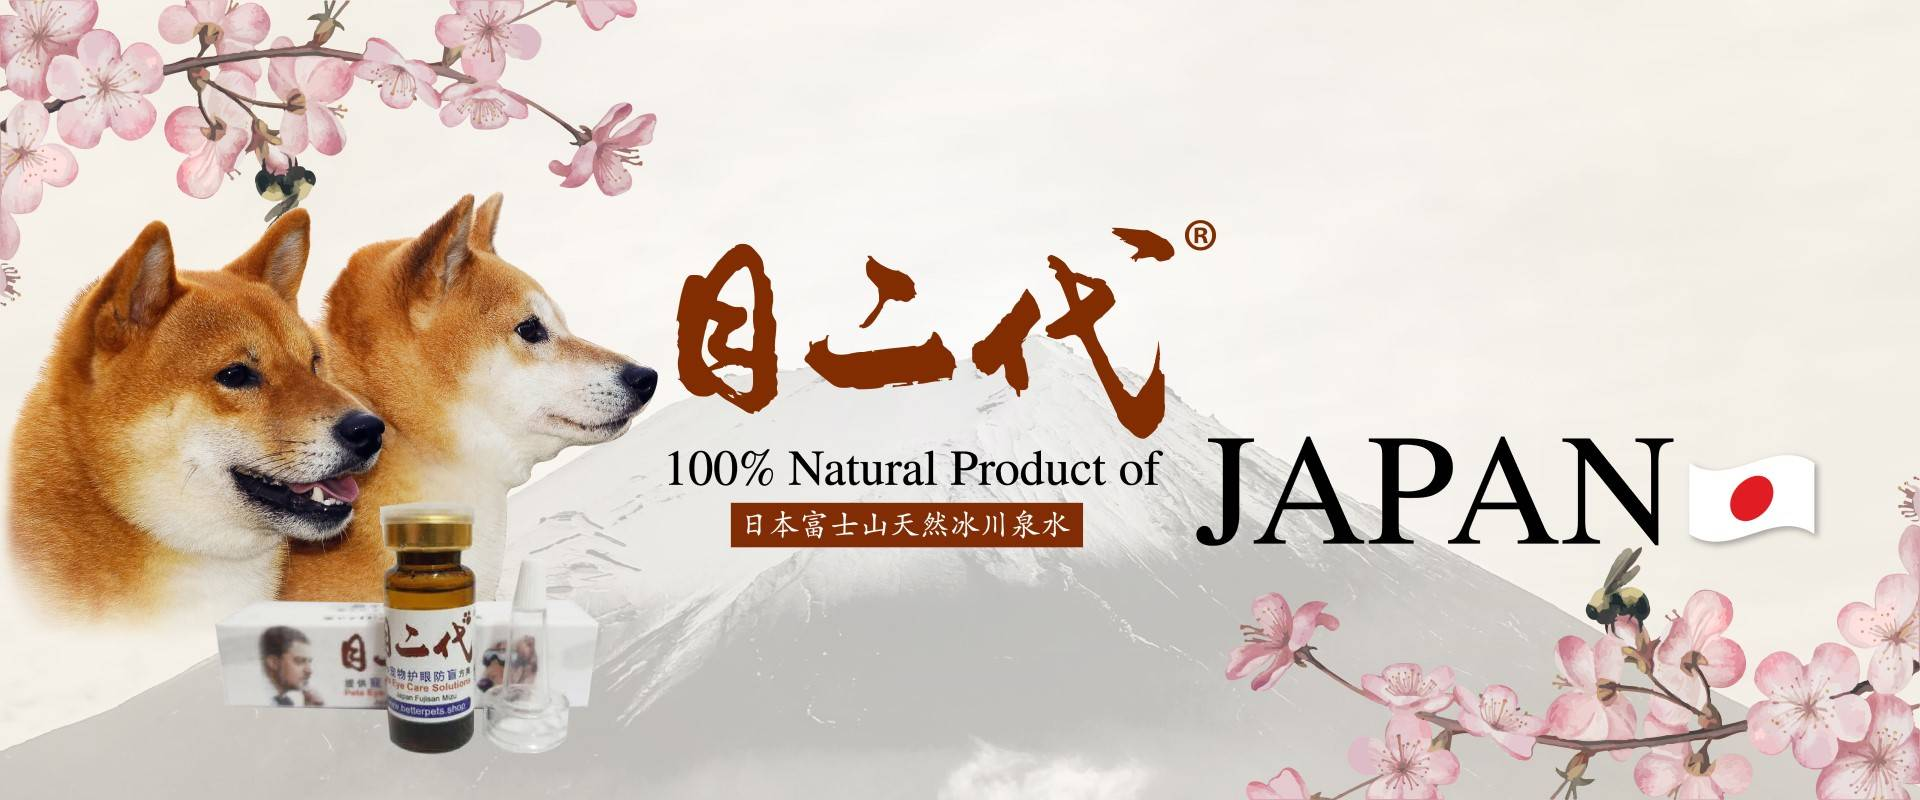 100% Nature Product of Japan